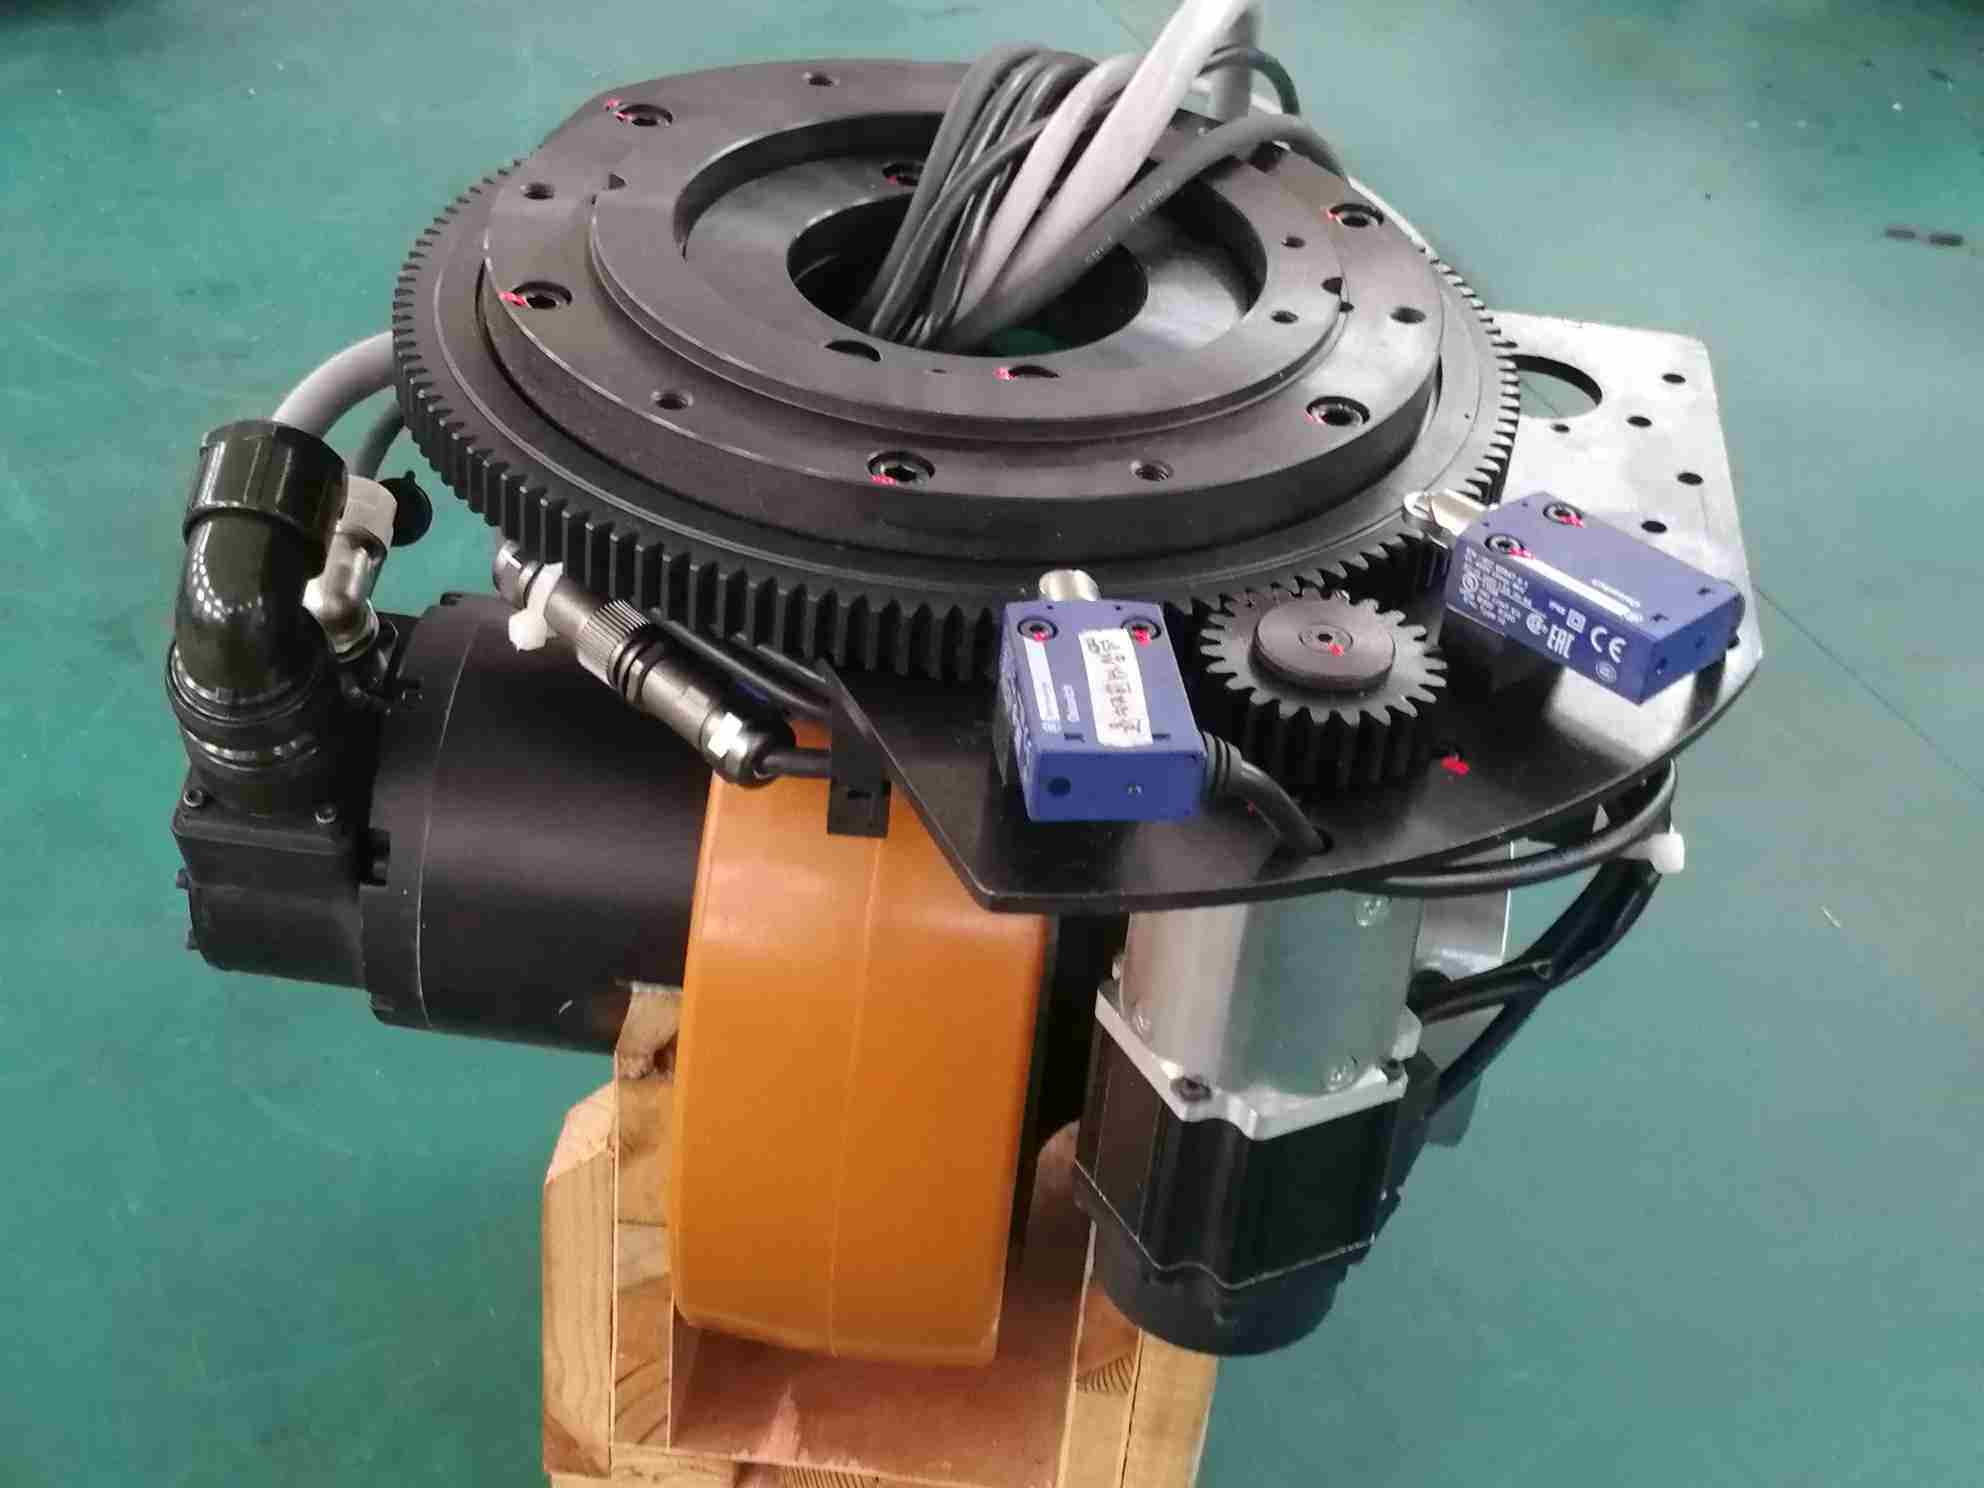 China High Performance Agv Drive Wheel Assembly Steerable System For Agv Robot China Agv Wheel Agv Drive Wheel